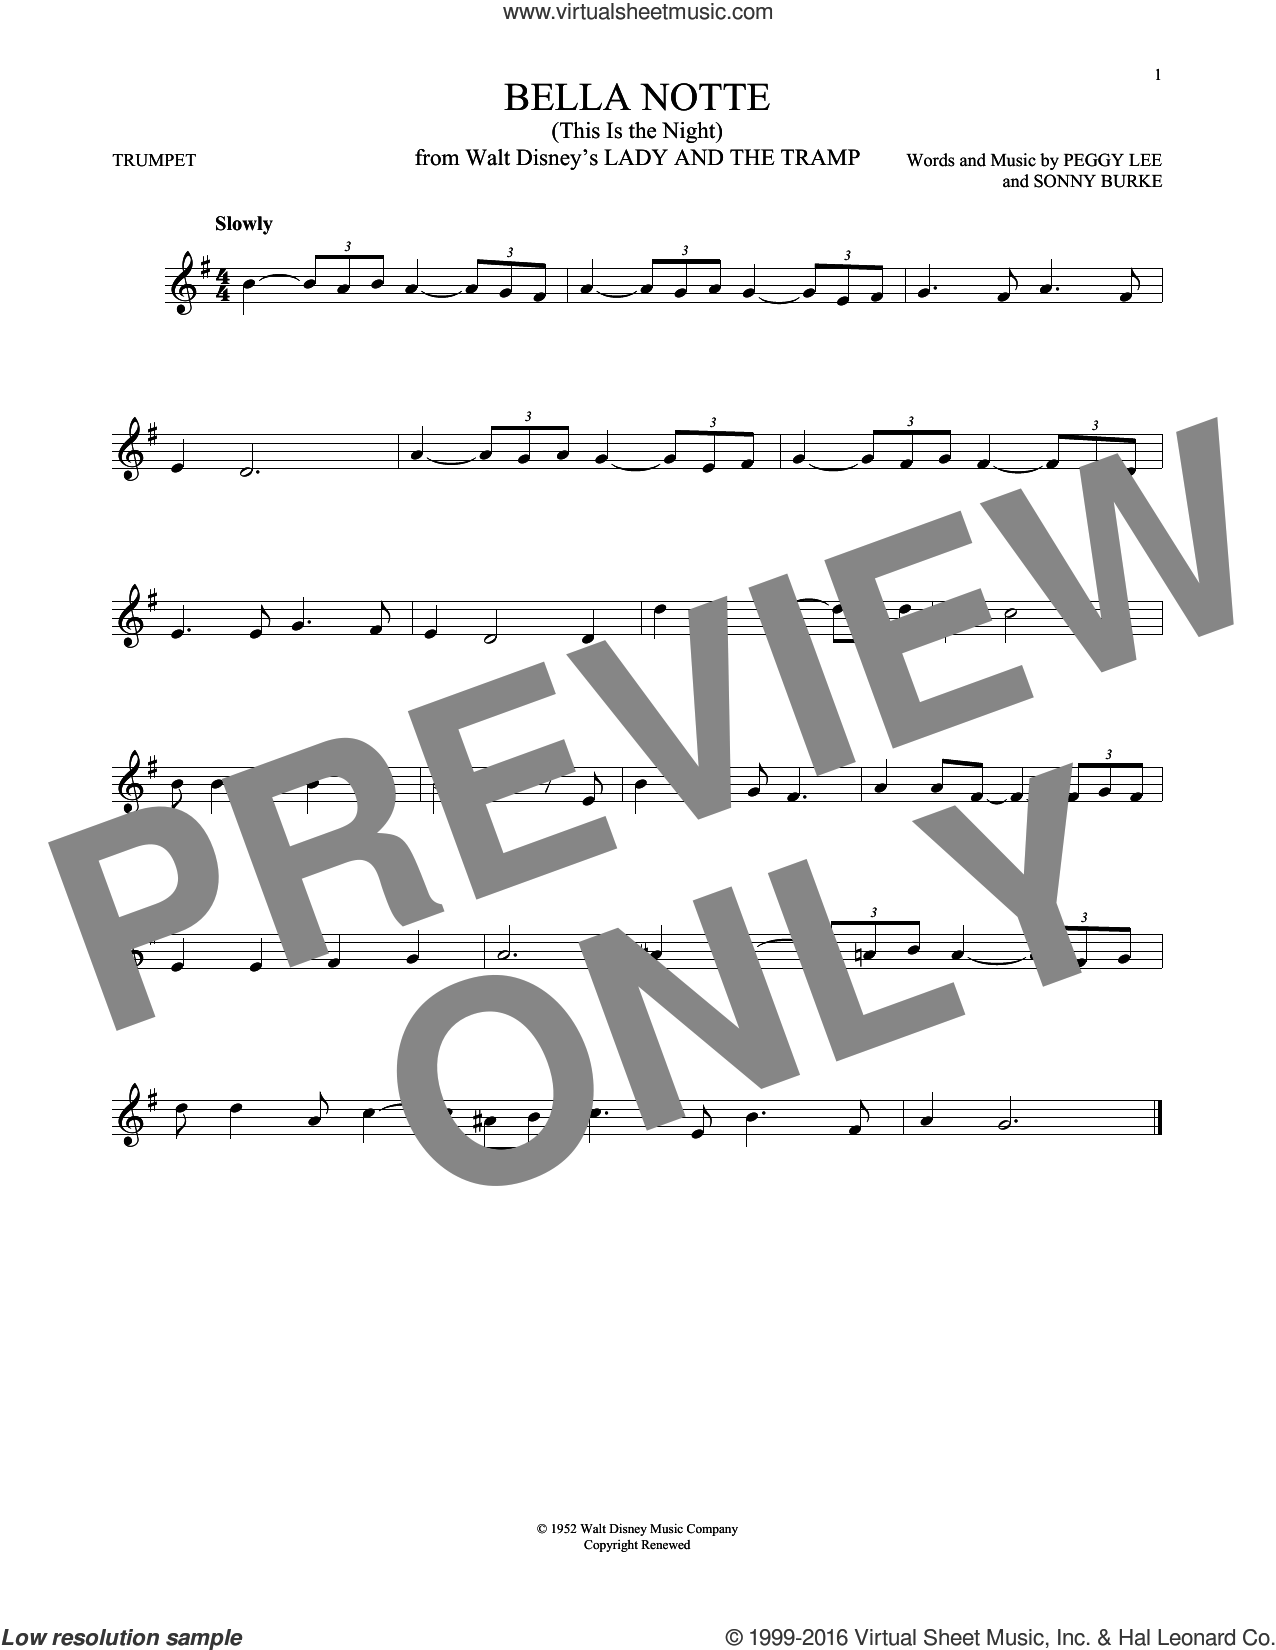 Bella Notte sheet music for trumpet solo by Peggy Lee, Peggy Lee & Sonny Burke and Sonny Burke, intermediate skill level